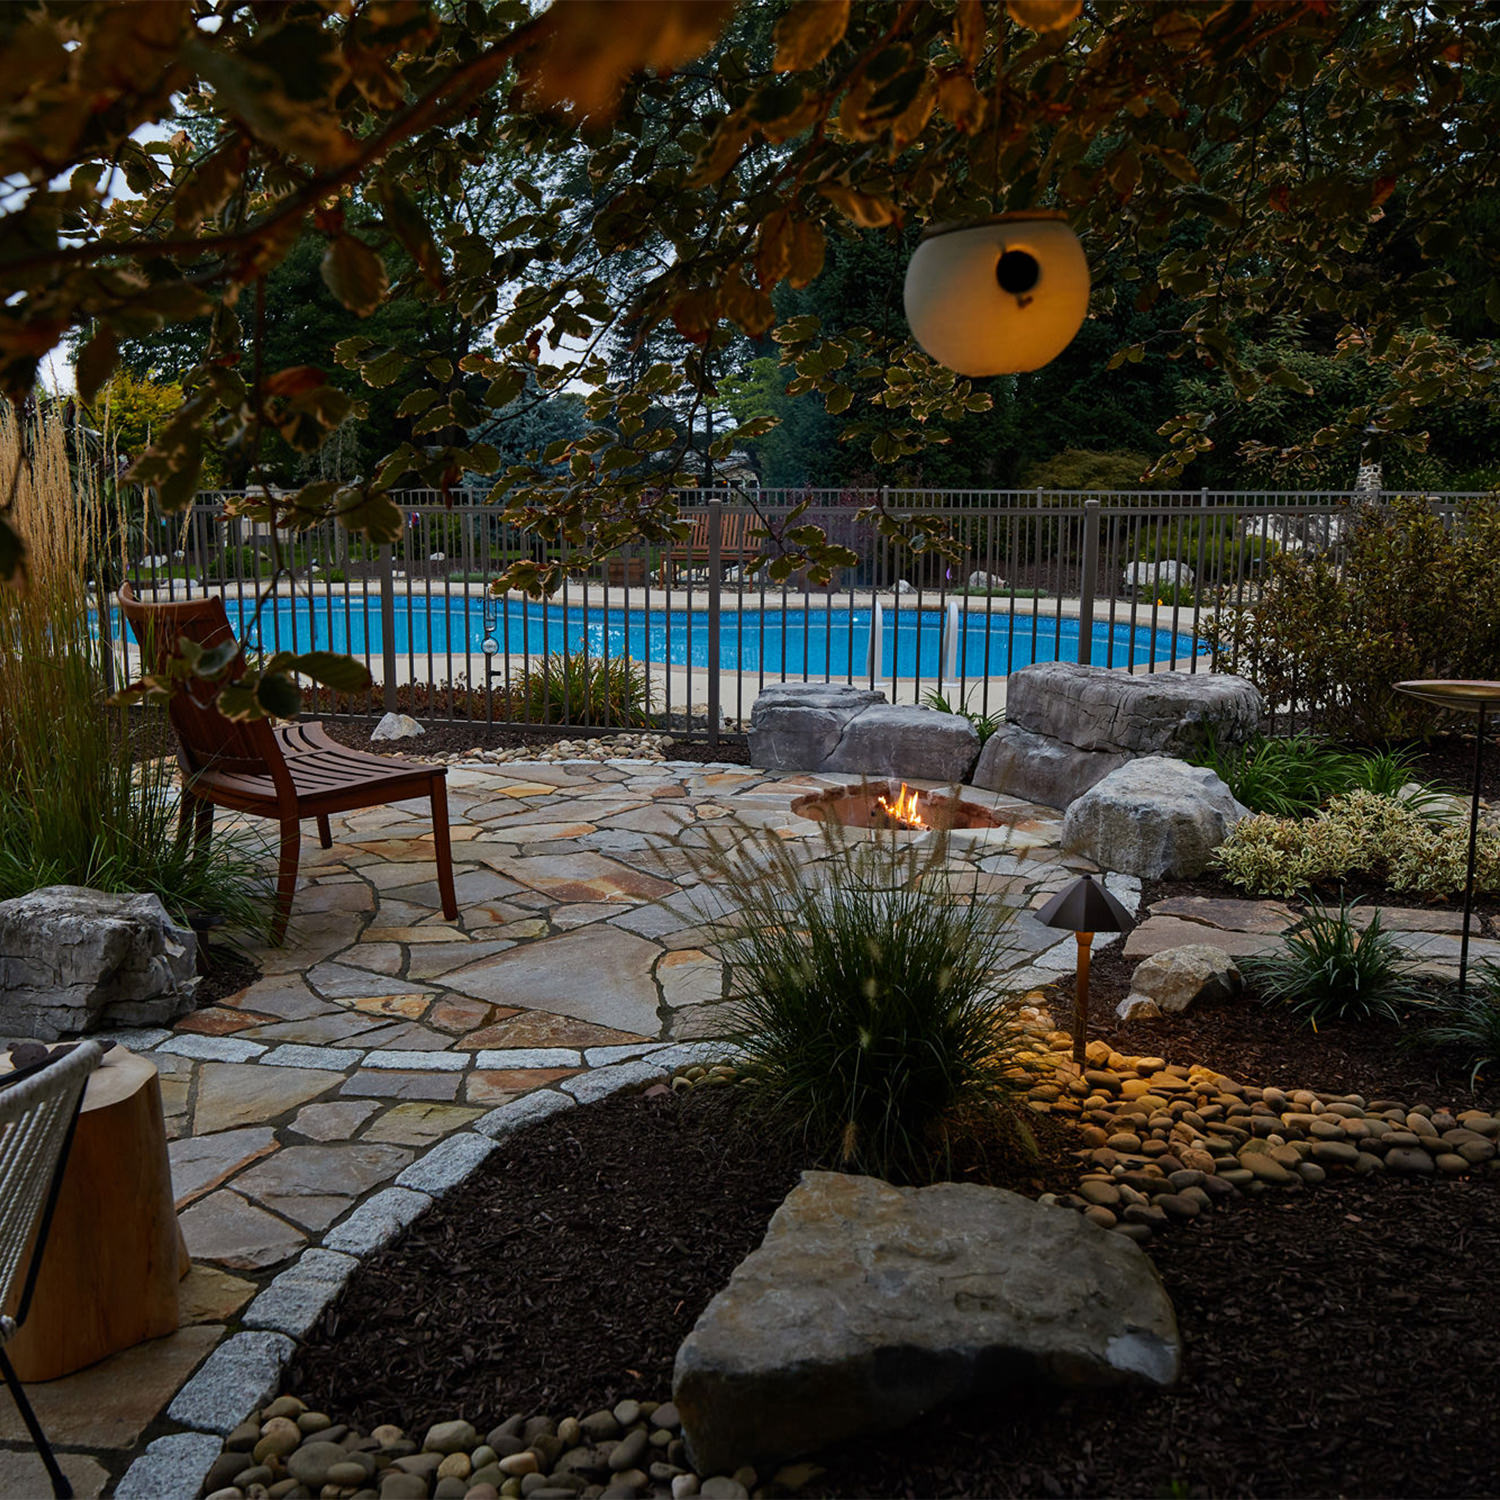 This irregular flagstone patio with sunken fire pit gives this poolside patio a rustic, inviting and cozy feeling…don't you think?